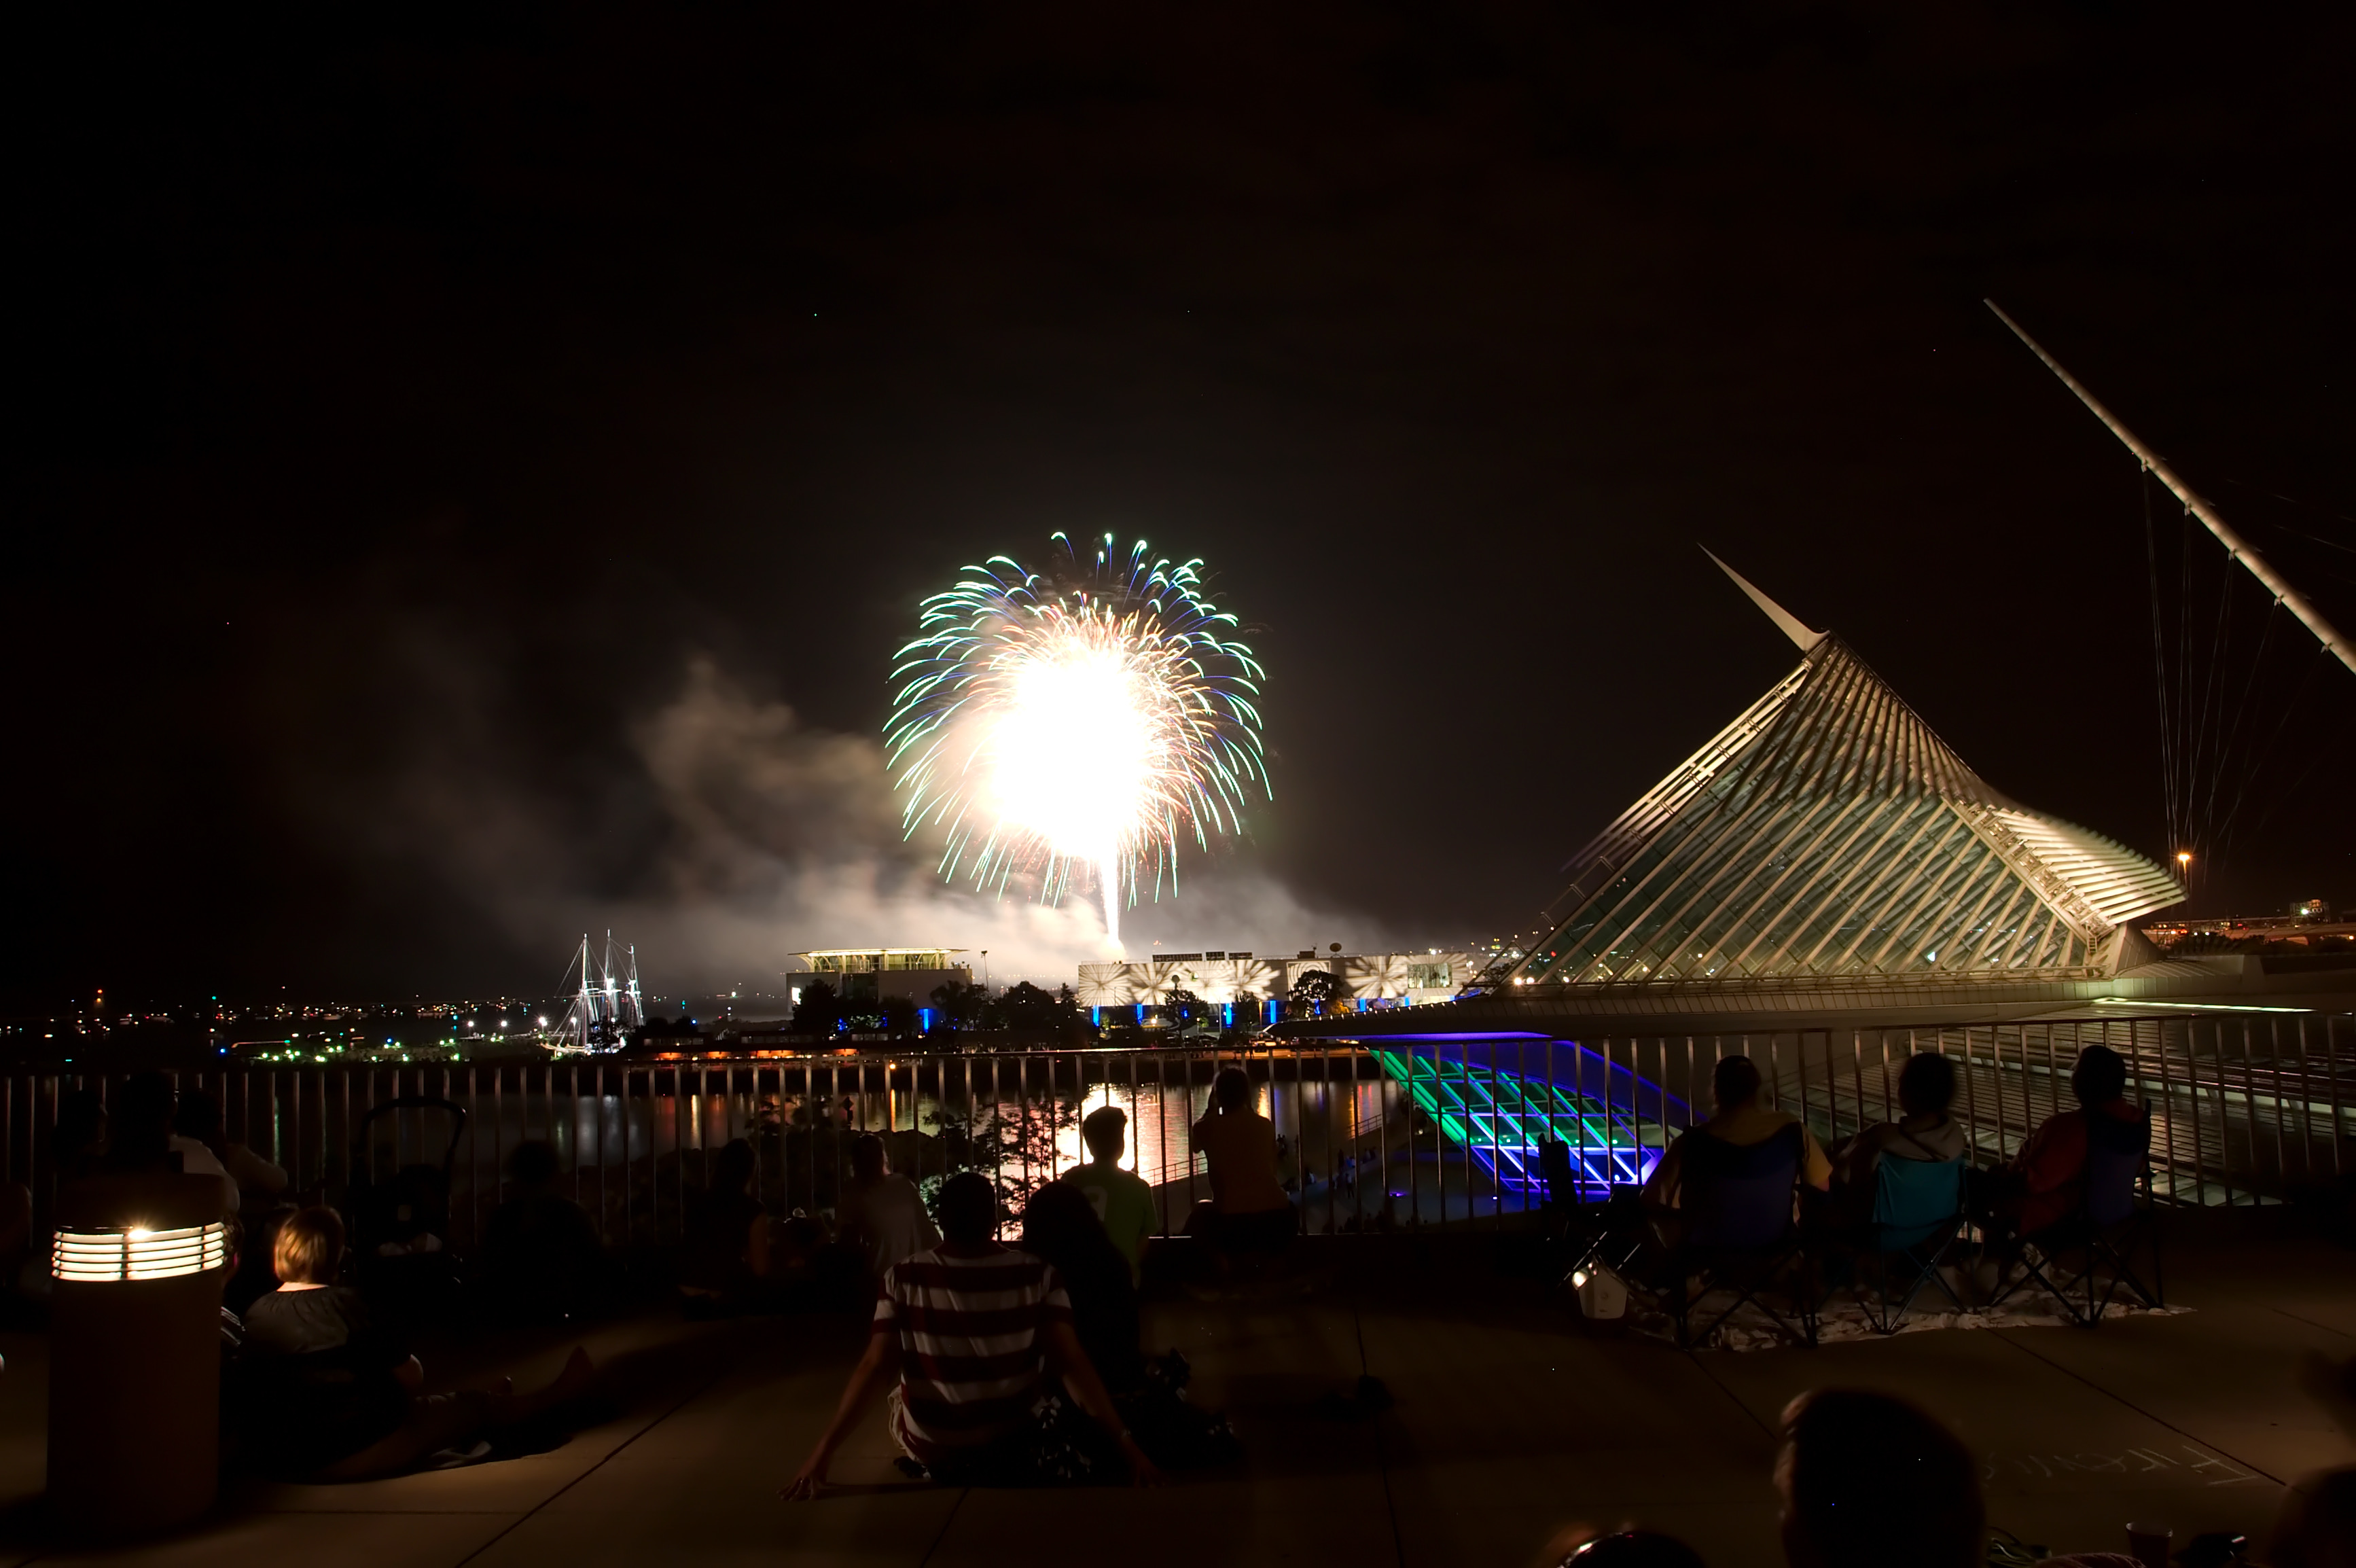 4th of july roundup 10 celebrations in wisconsin the for Craft fairs milwaukee wi